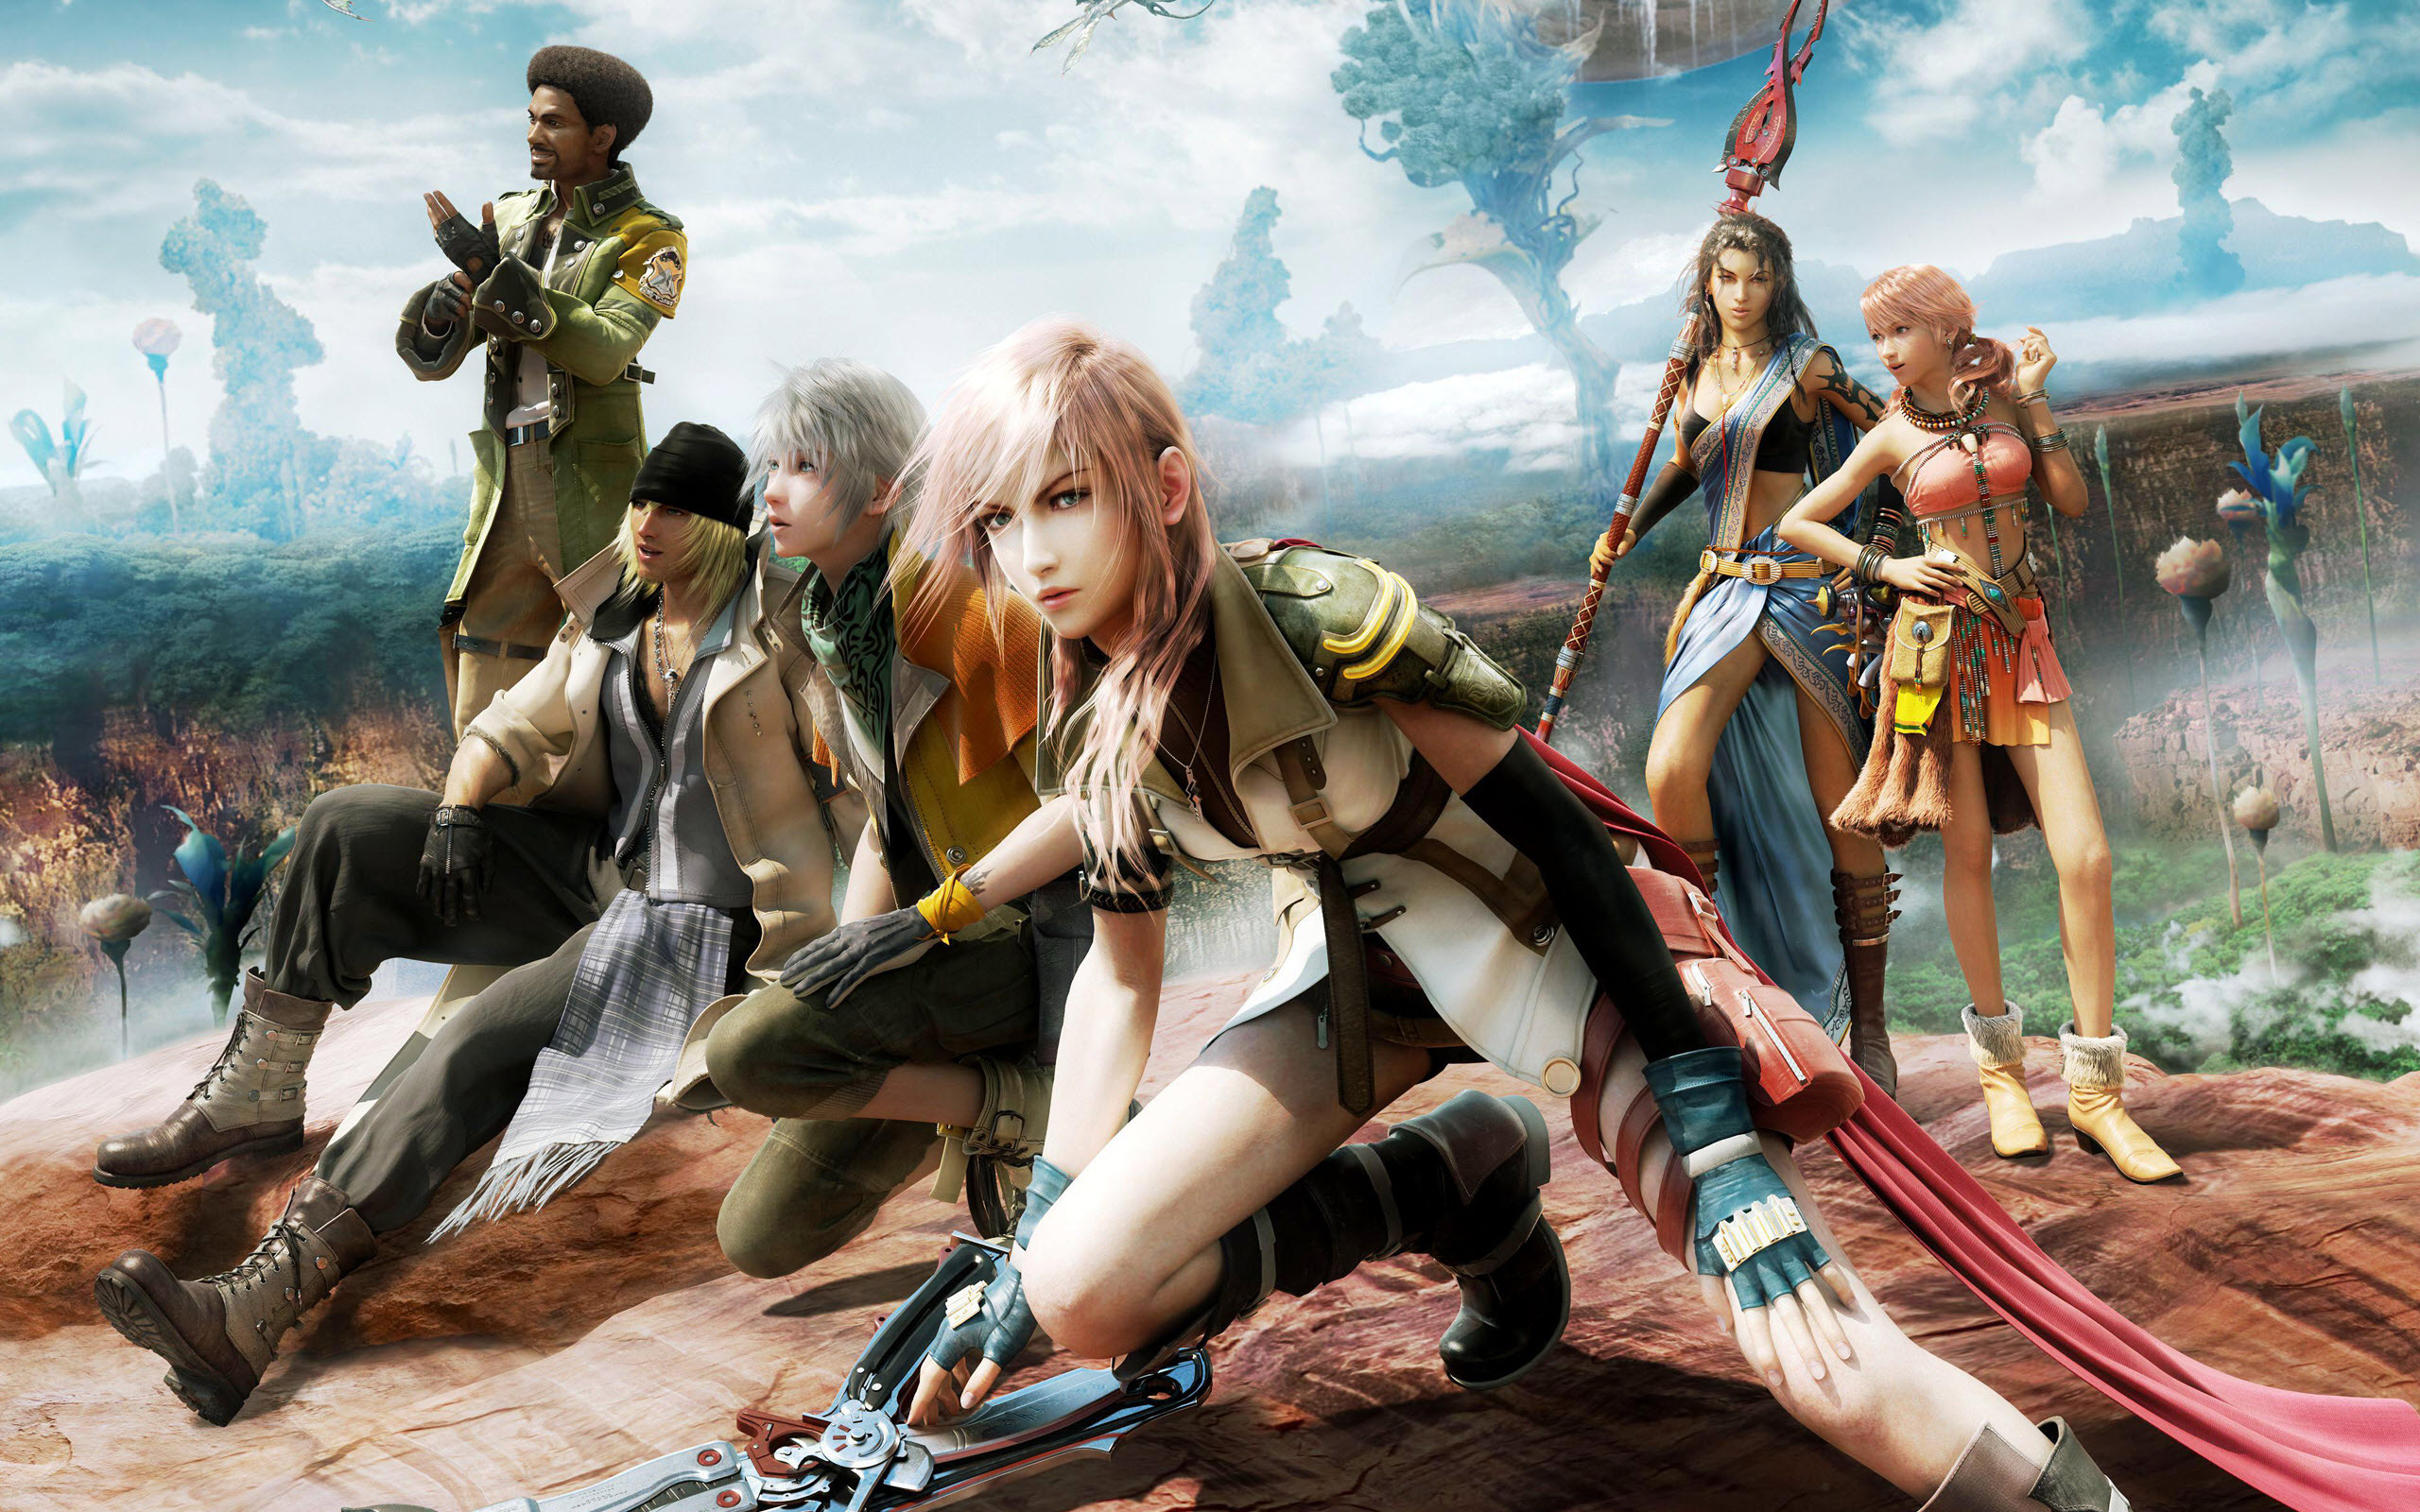 Final Fantasy 13 Wallpaper Hd